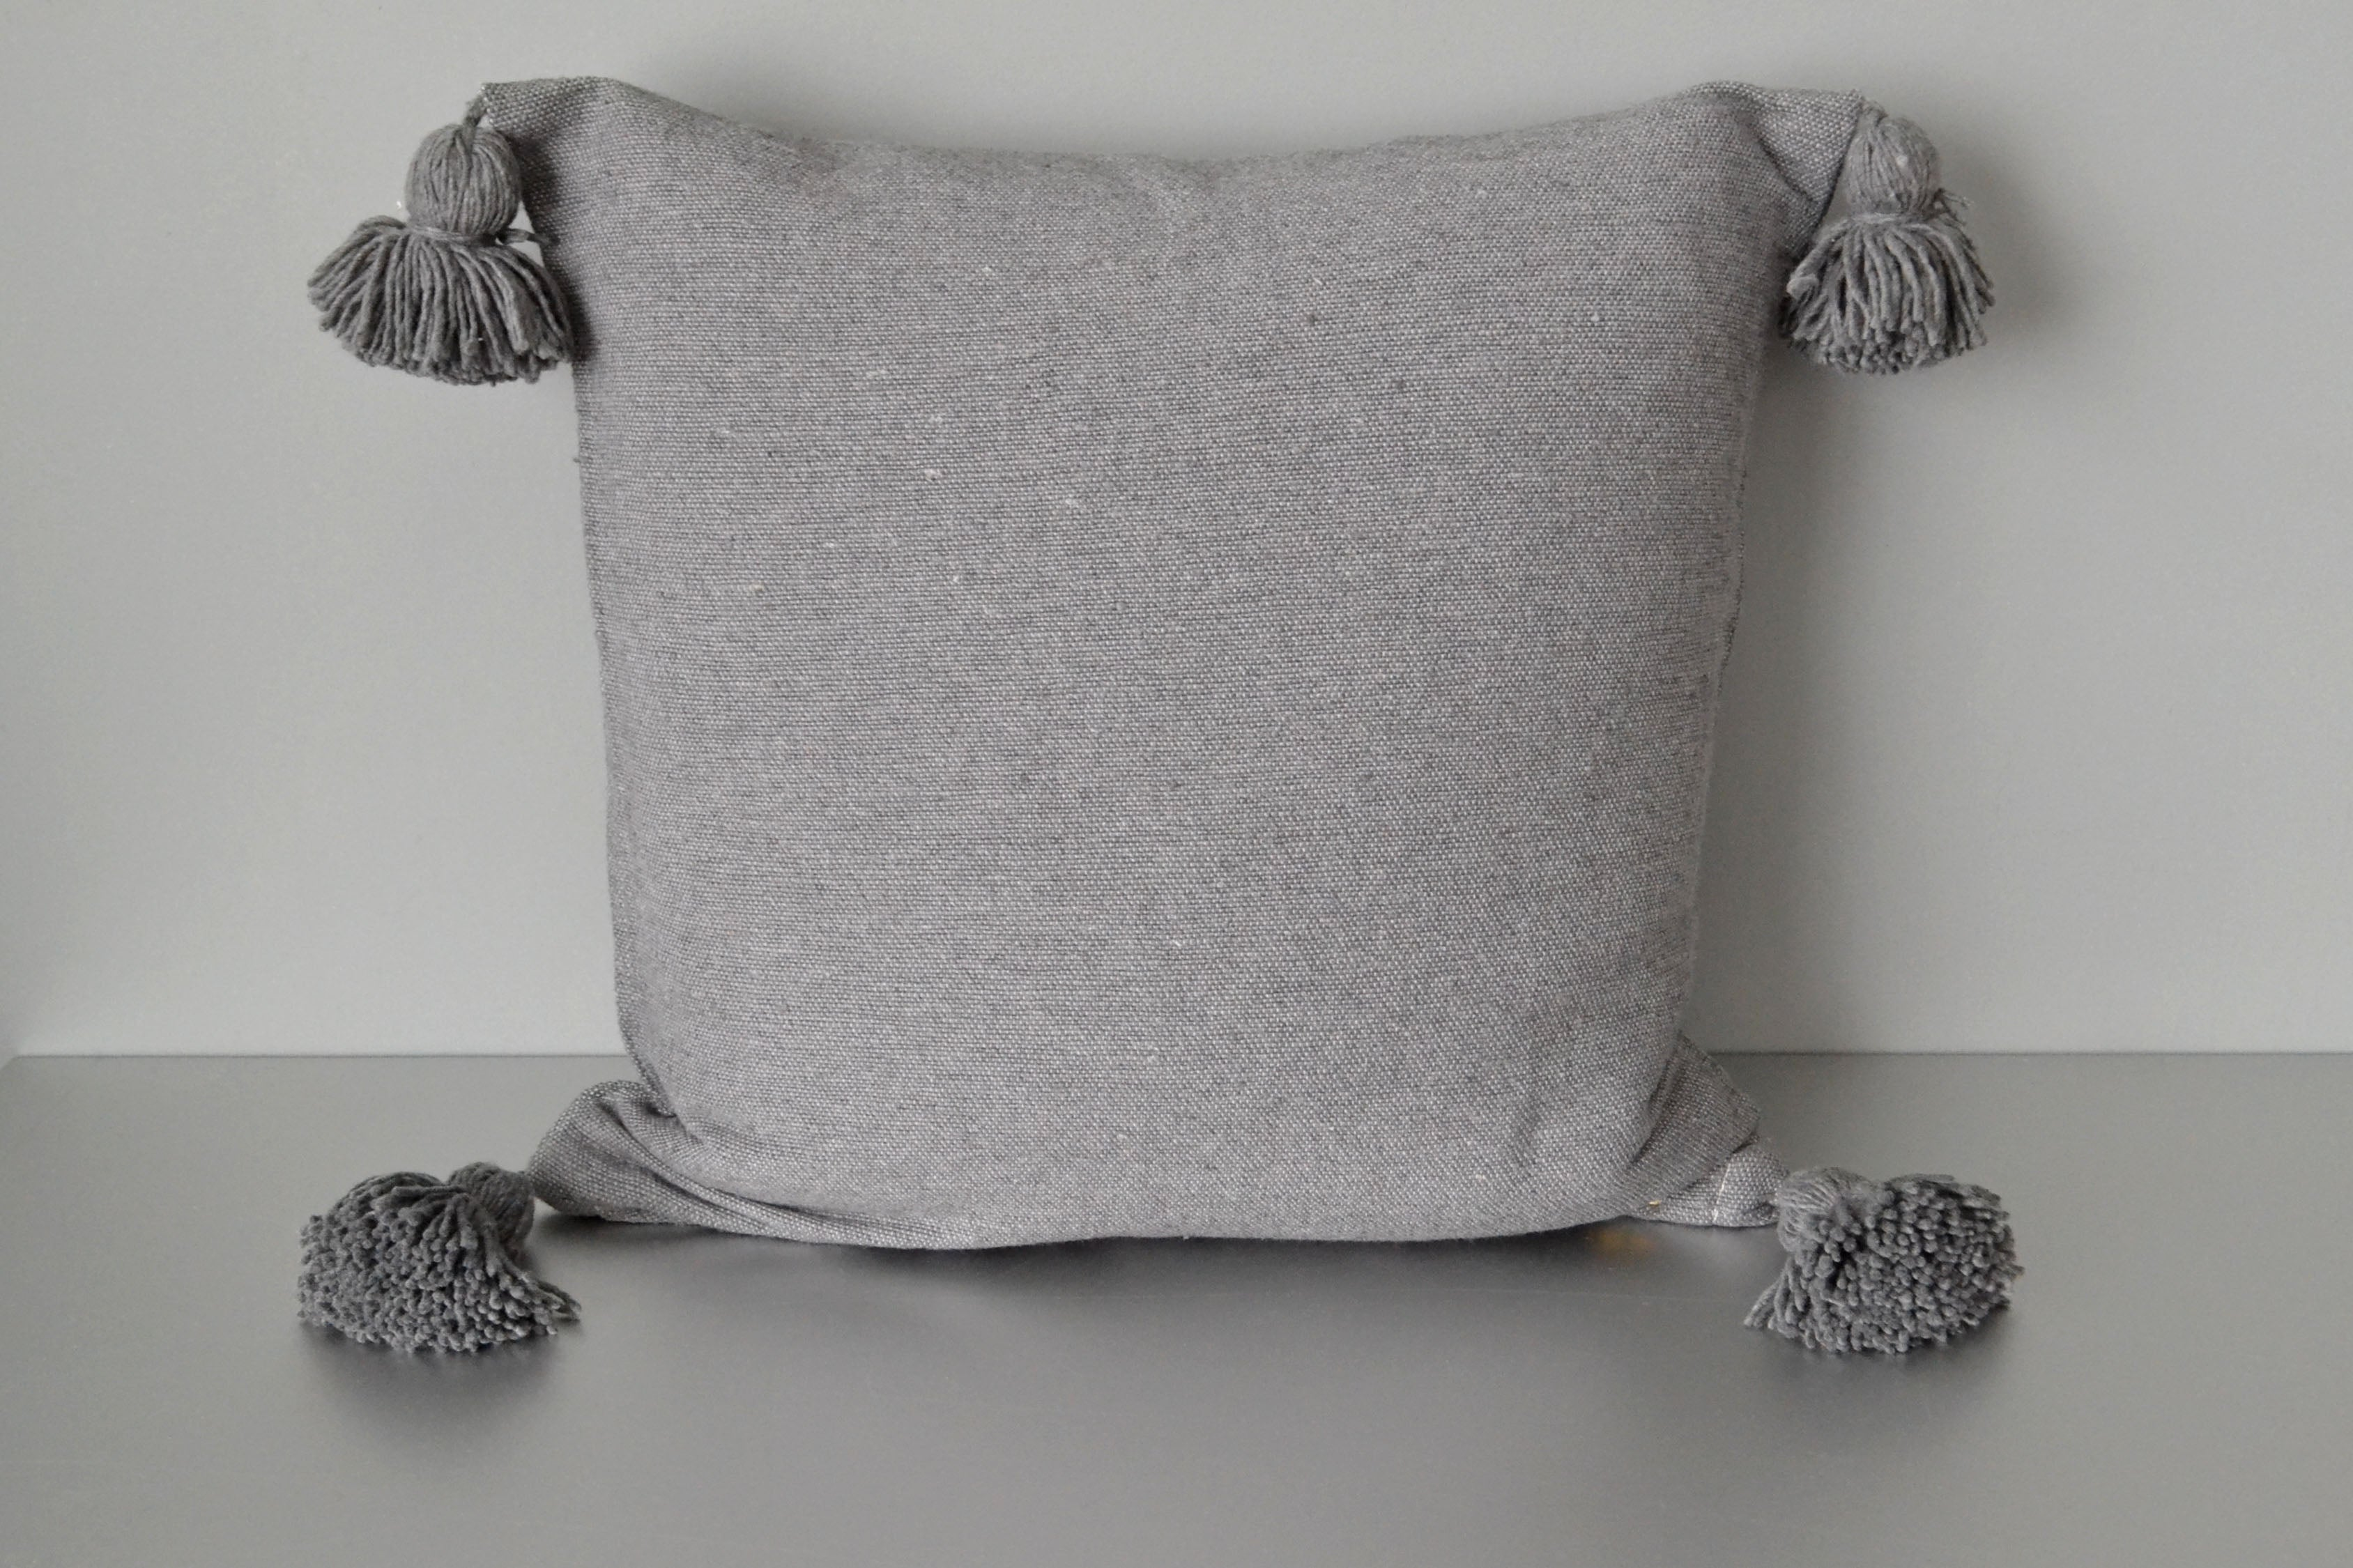 Steel Gray Cotton Pom Pom Throw Pillow by Yuba Mercantile